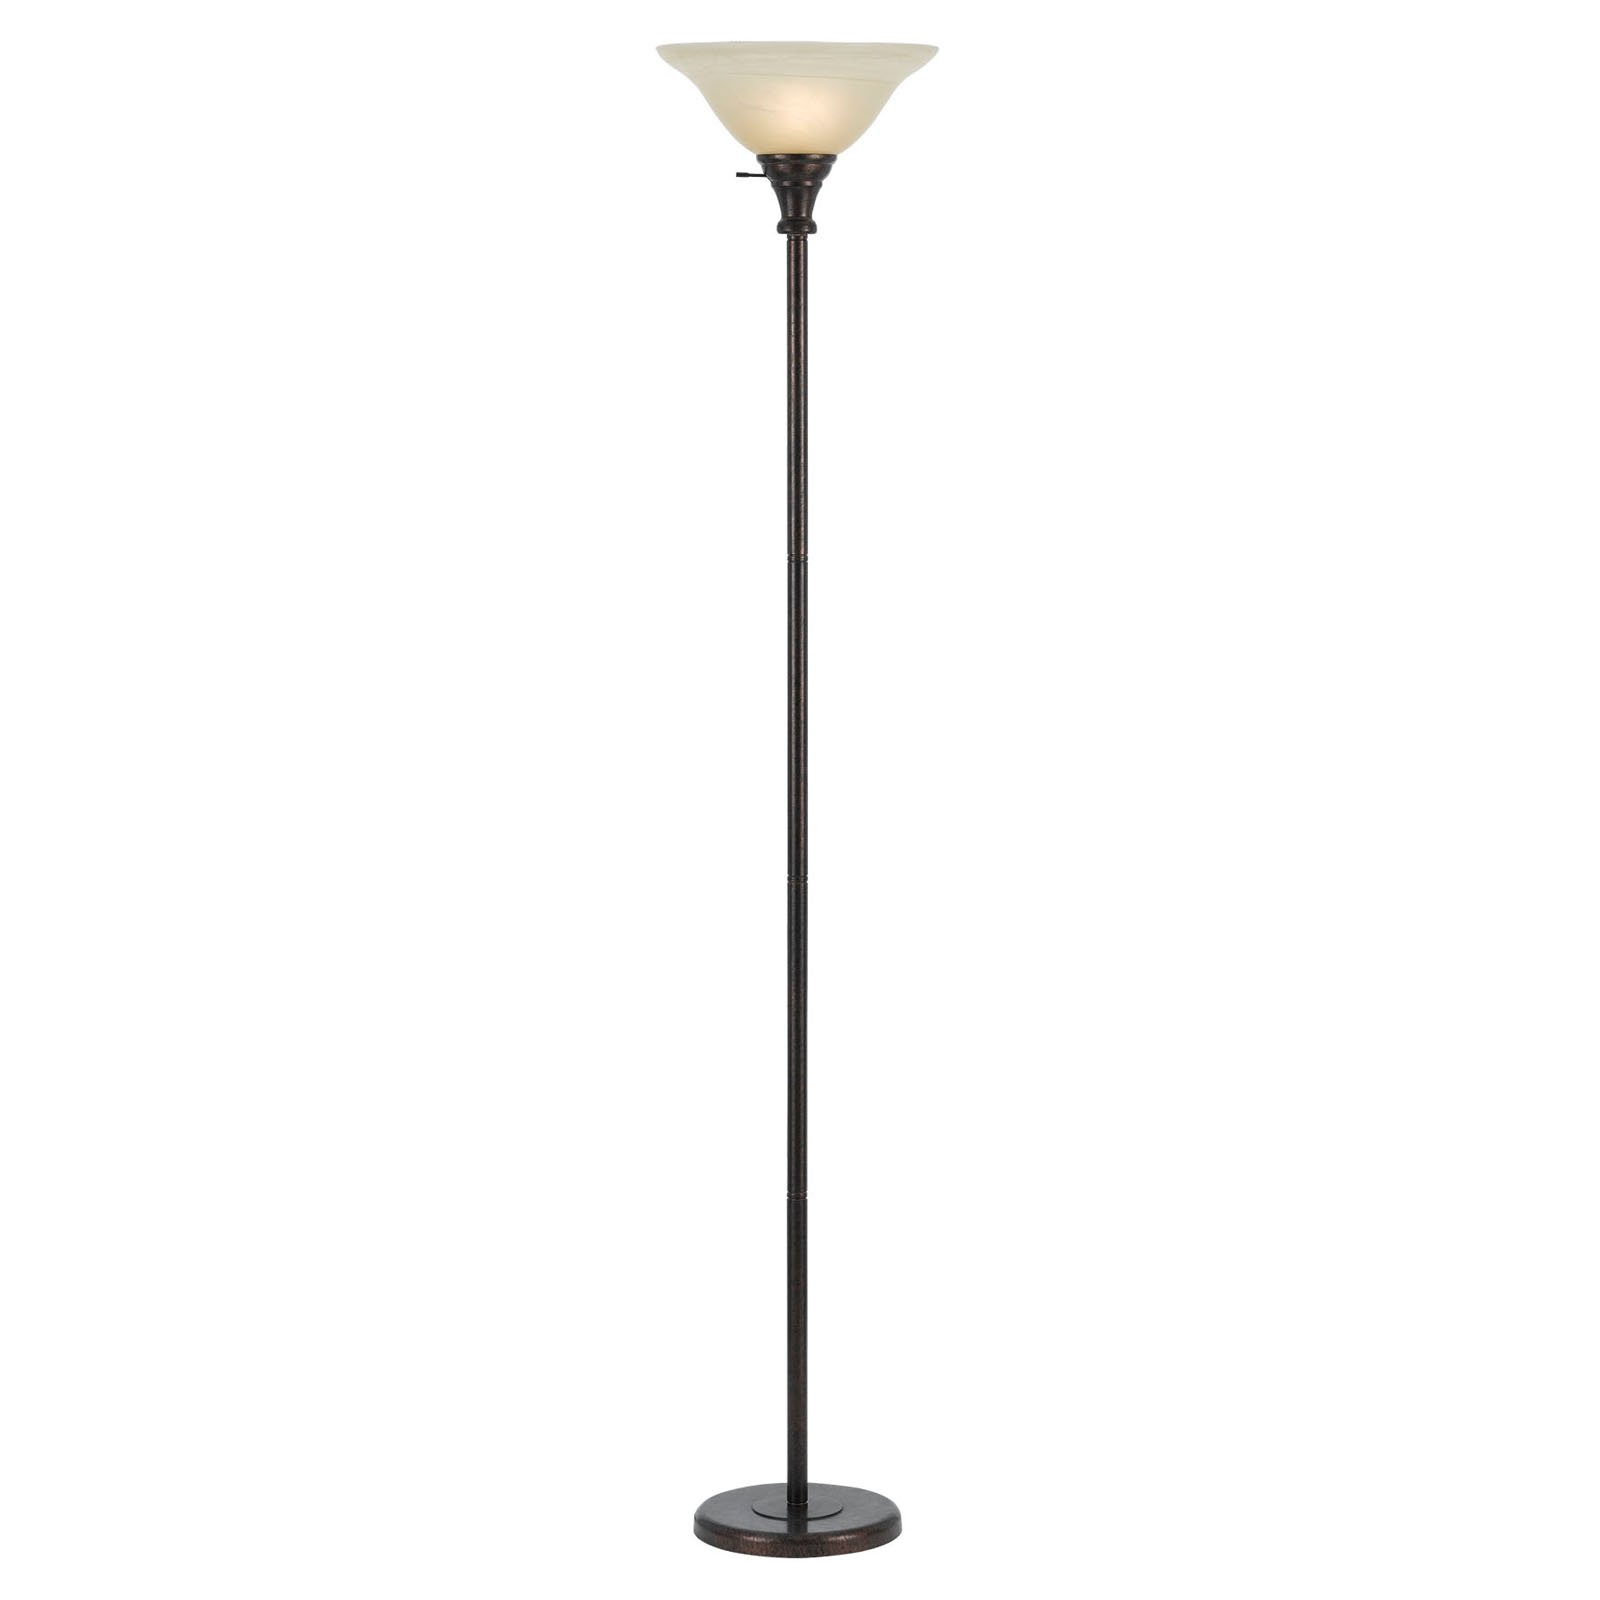 Cal Lighting BO-213 Metal Torchiere with Glass Shade by CAL Lighting